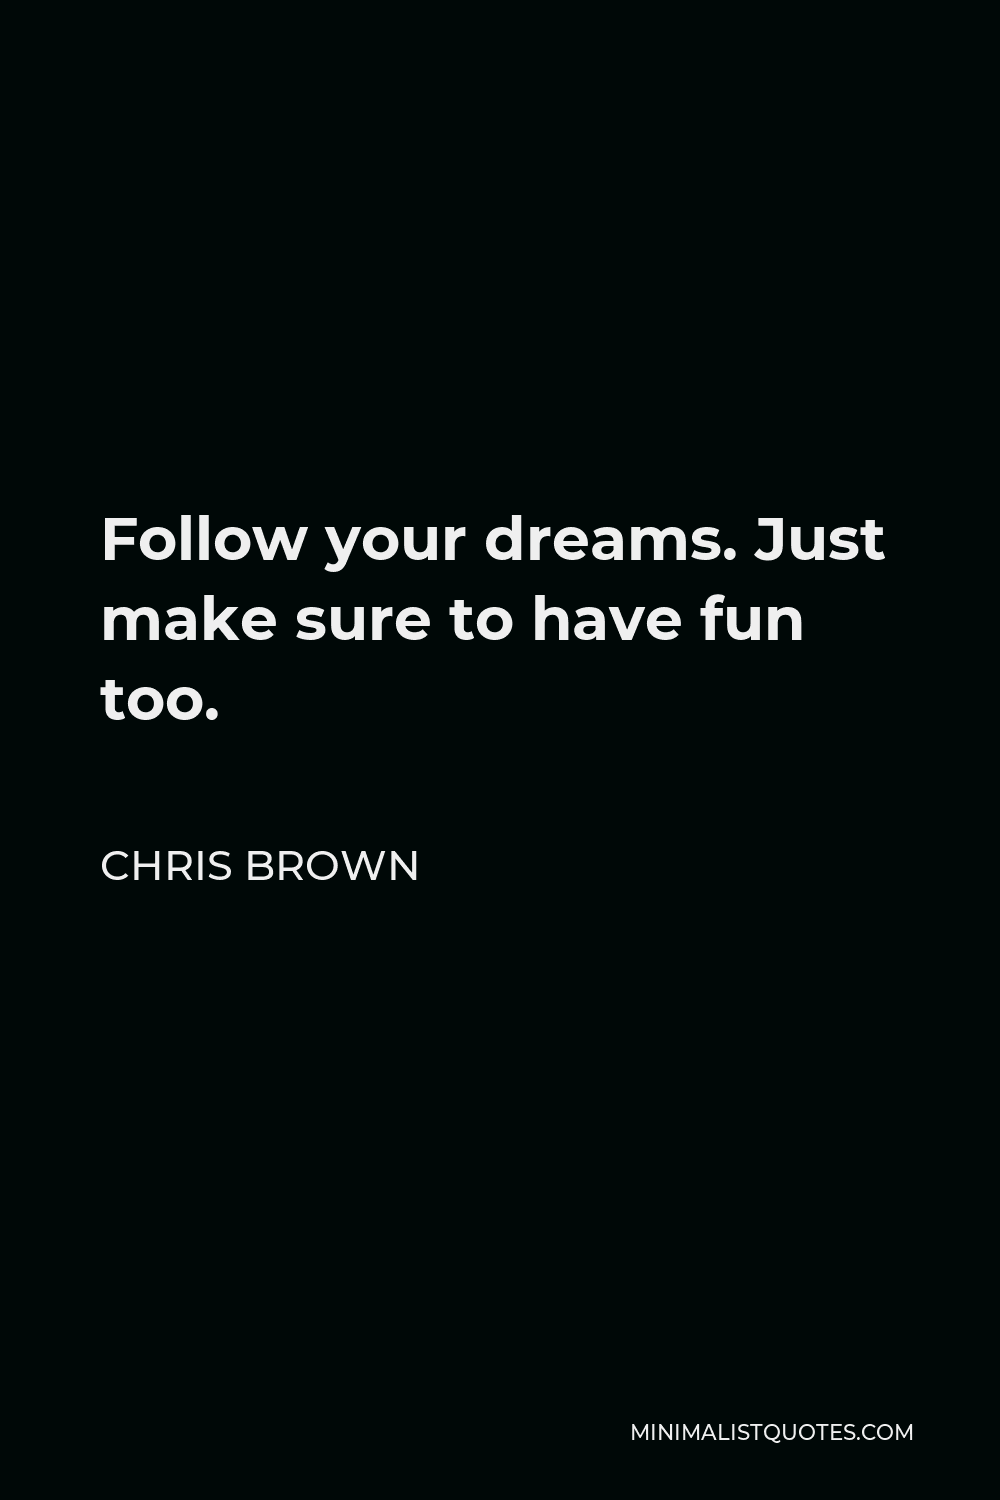 Chris Brown Quote - Follow your dreams. Just make sure to have fun too.